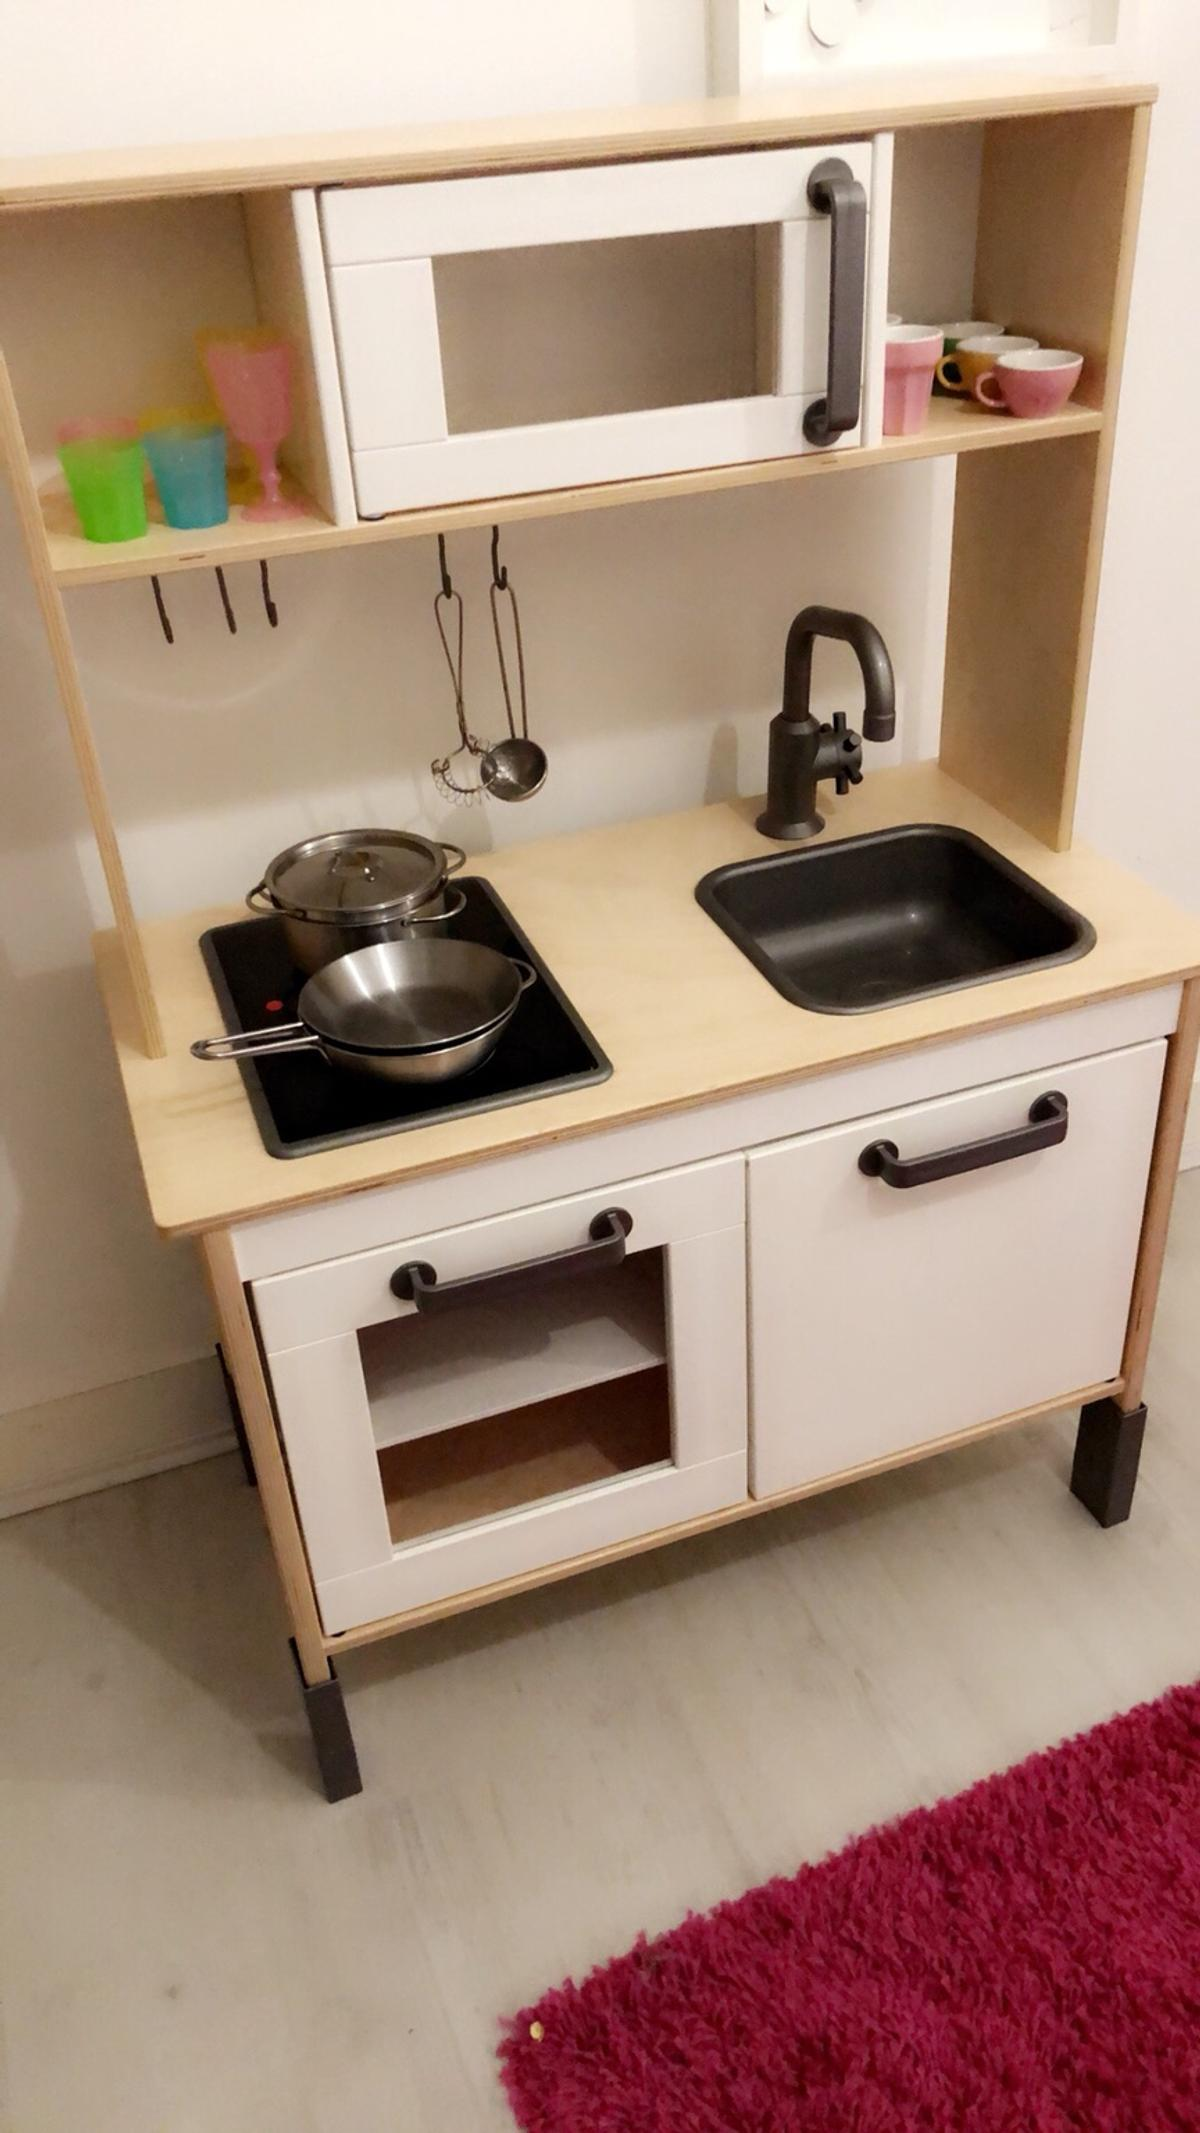 Kids Ikea Kitchen With Ikea Accessories In Sw1e London For 45 00